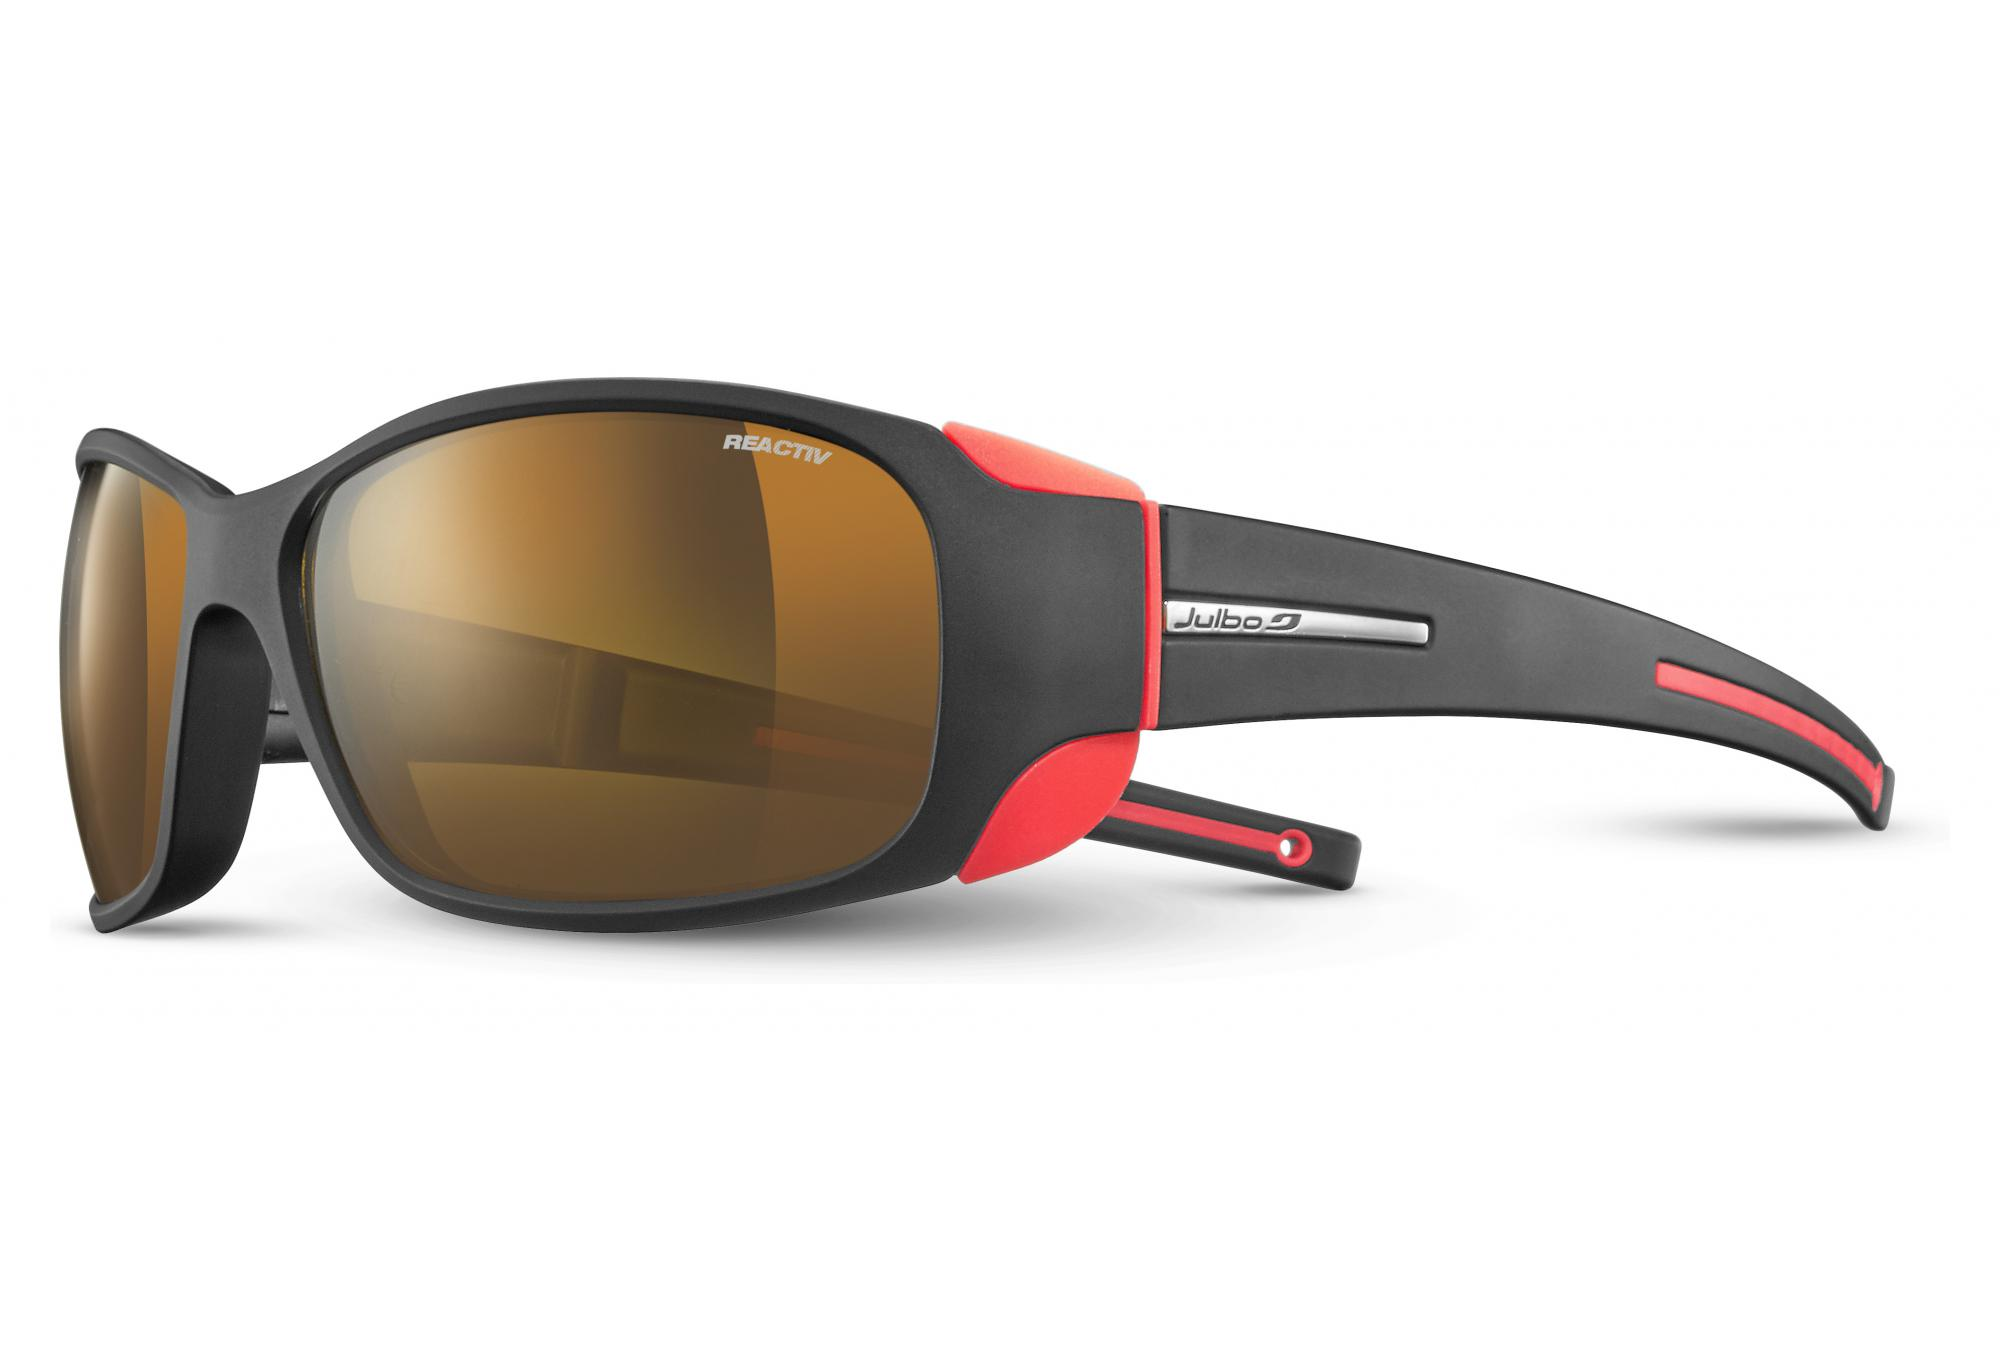 7e77f40ea0 Julbo MonteBianco Cameleon Sunglasses Black - Orange